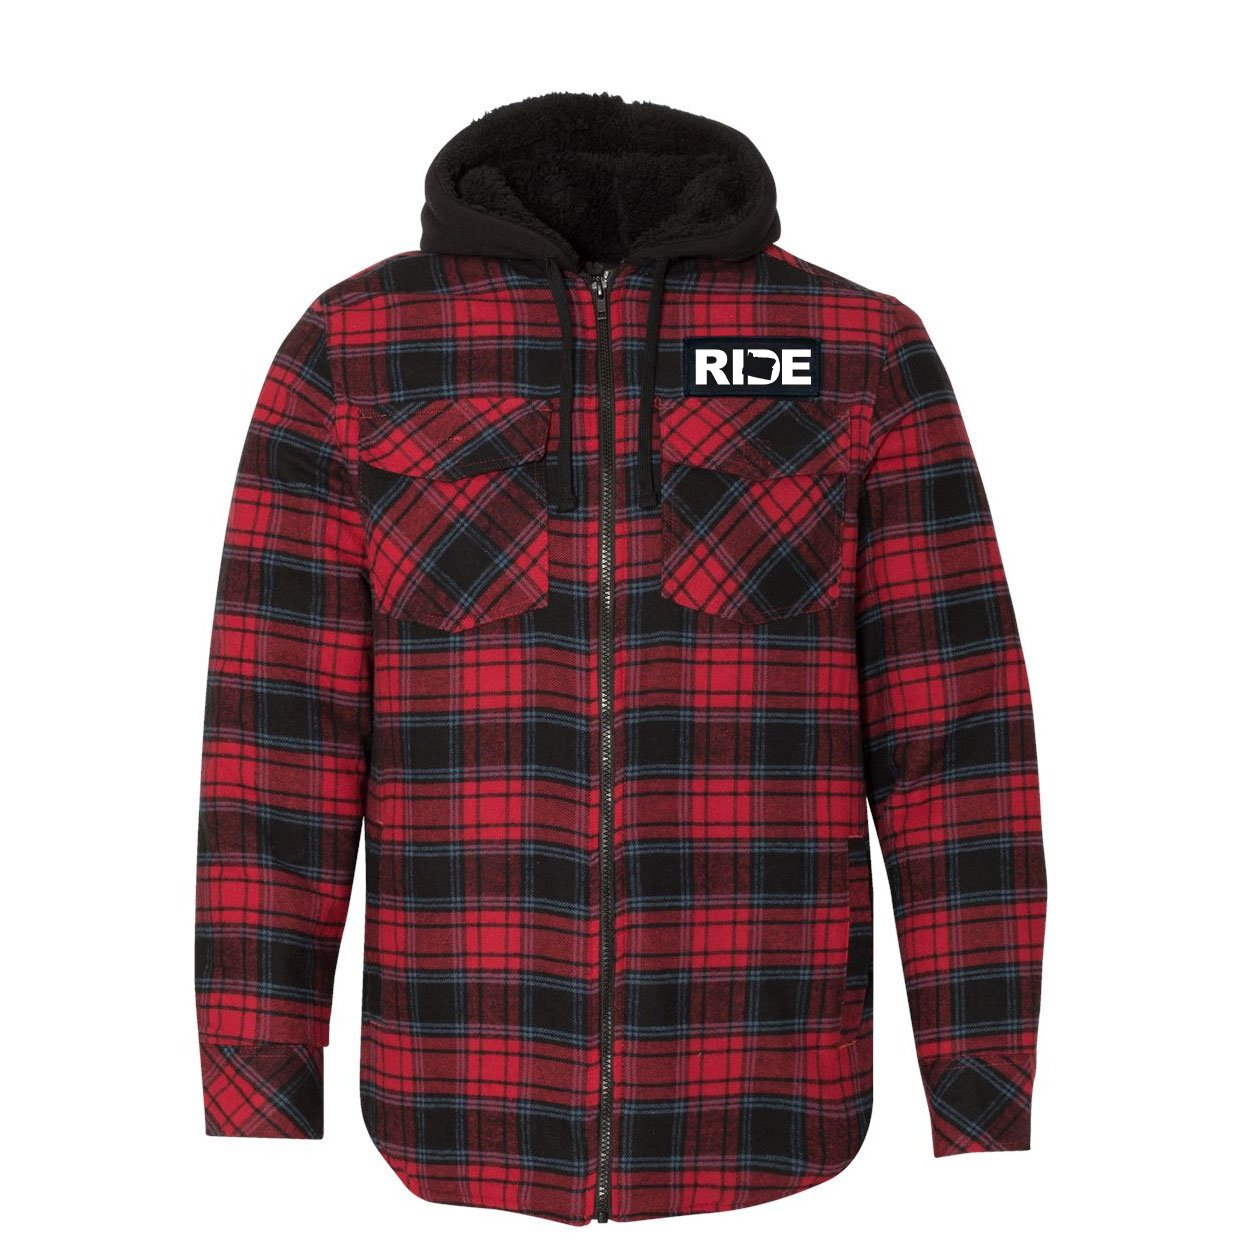 Ride Oregon Classic Unisex Full Zip Woven Patch Hooded Flannel Jacket Red/Black Buffalo (White Logo)